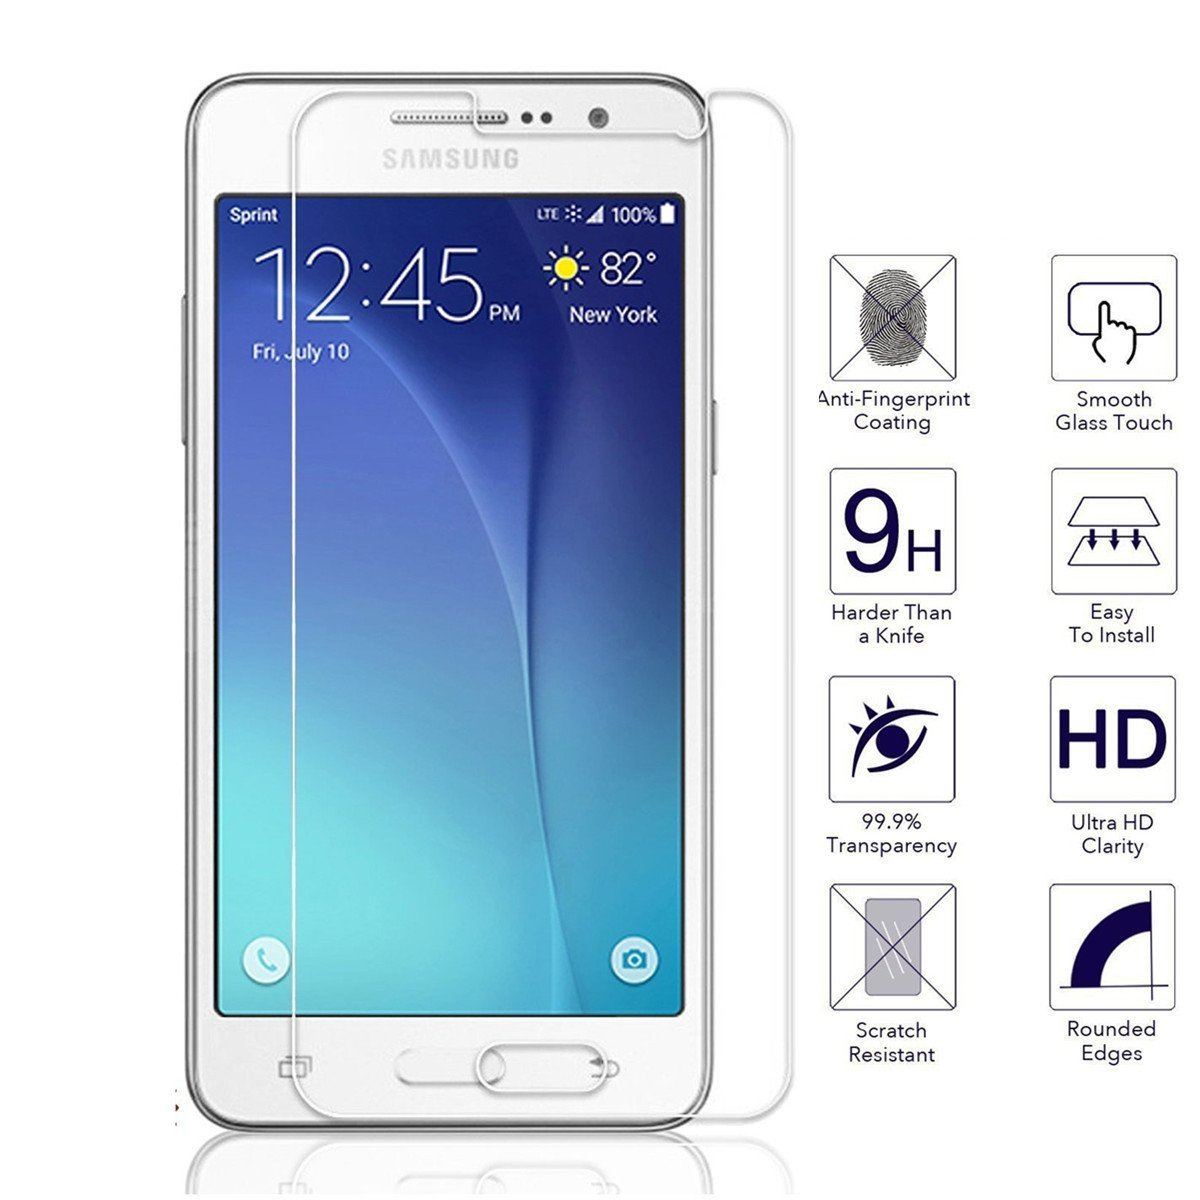 2Pcs Toughed Film Protector Tempered Glass For Samsung Galaxy S3 S4 S5 NEO S6 J7 J5 J3 J1 2016 Core J2 Prime Grand Prime G5302Pcs Toughed Film Protector Tempered Glass For Samsung Galaxy S3 S4 S5 NEO S6 J7 J5 J3 J1 2016 Core J2 Prime Grand Prime G530